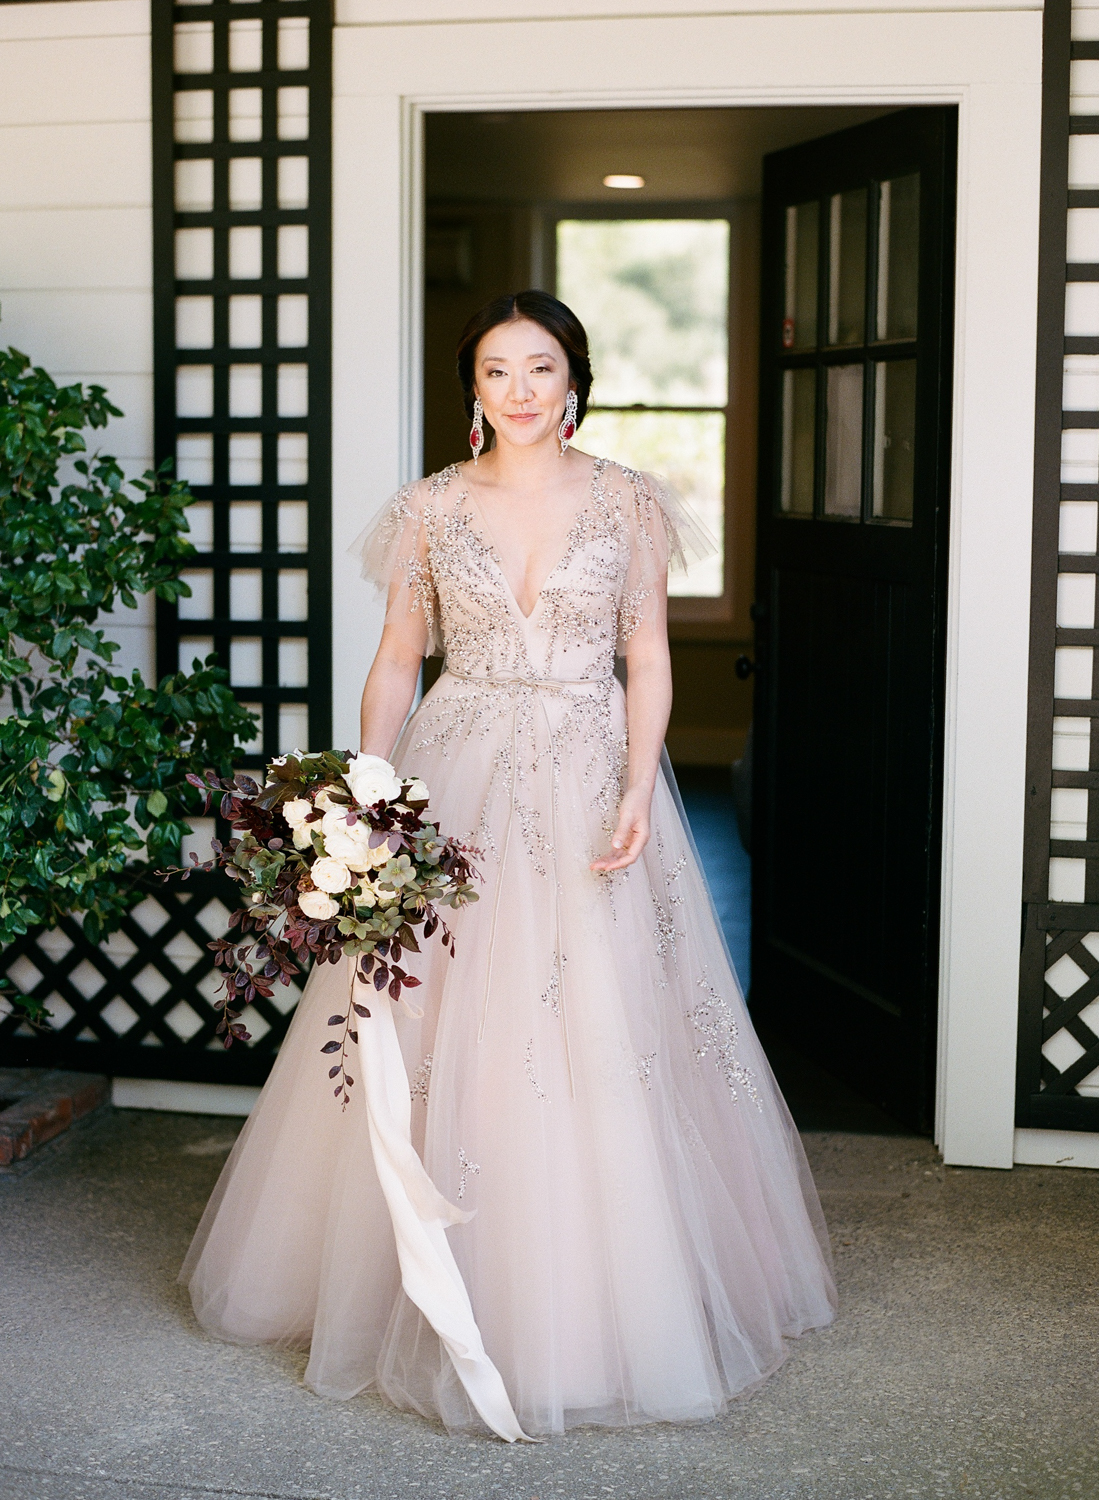 Monique Lhuillier ball gown wedding dress